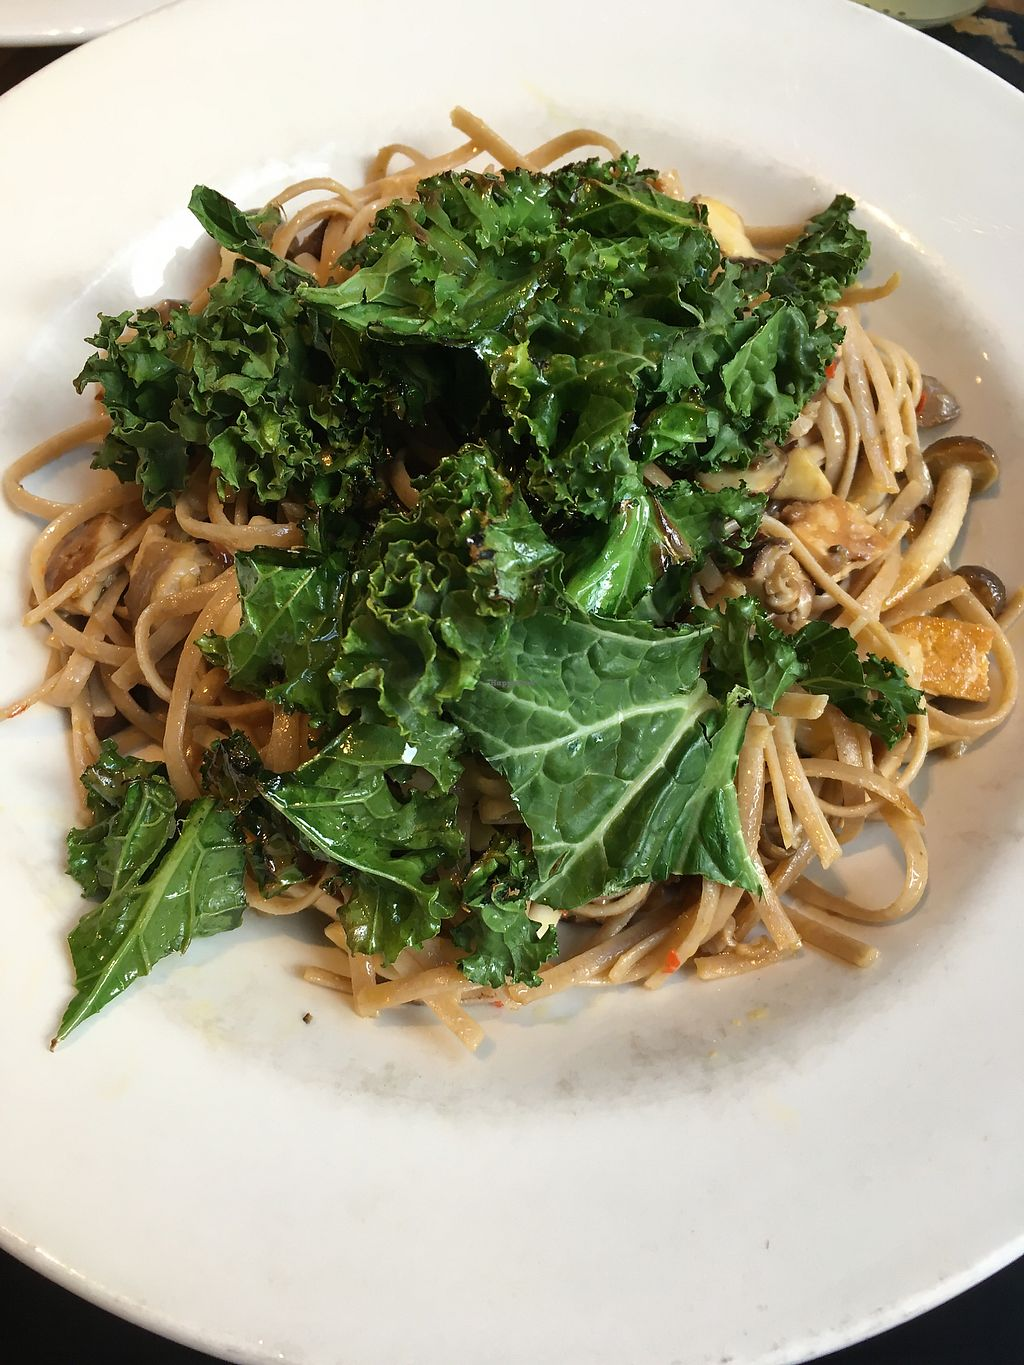 "Photo of The Herbivore Kitchen  by <a href=""/members/profile/xveganladyx"">xveganladyx</a> <br/>Mushrooms Linguine  <br/> February 10, 2018  - <a href='/contact/abuse/image/97309/357351'>Report</a>"